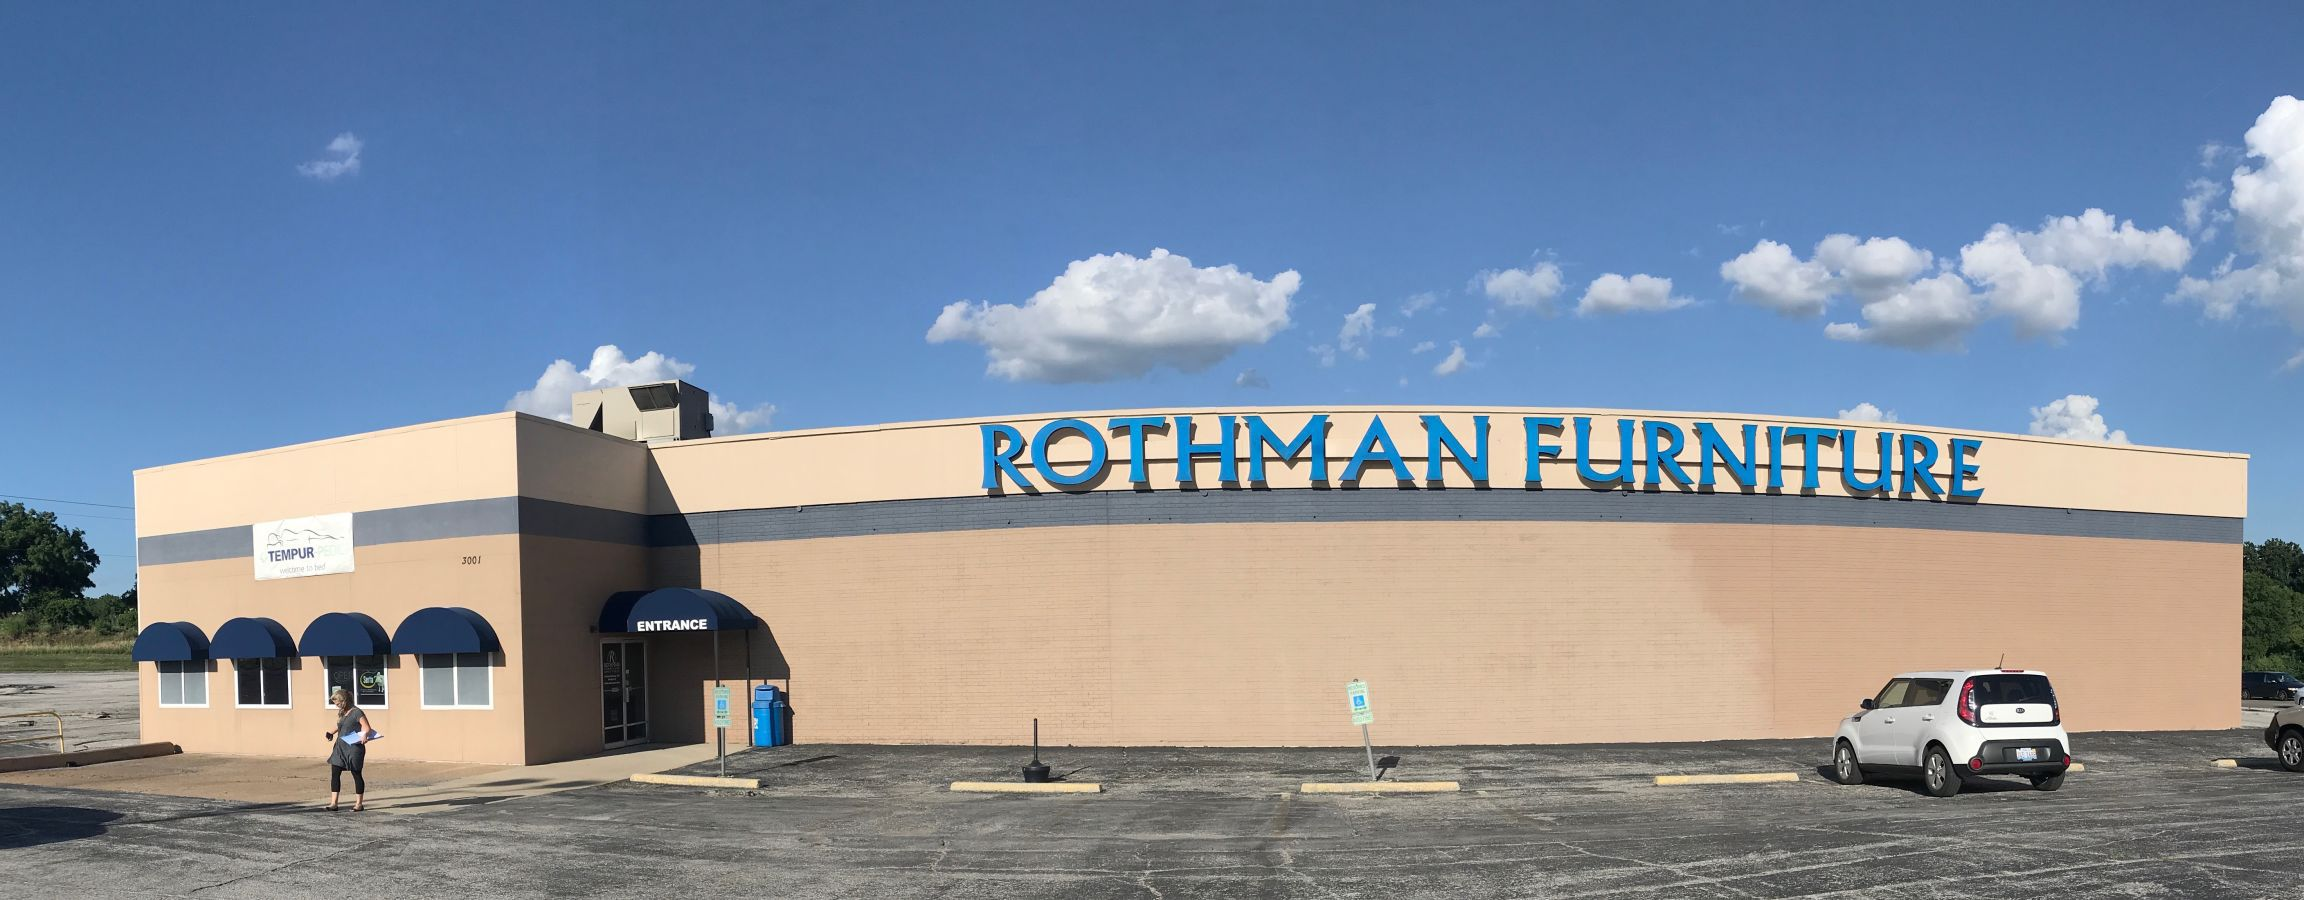 Awesome Rothman Furniture Closing All Stores After 90 Years | Business |  Stltoday.com